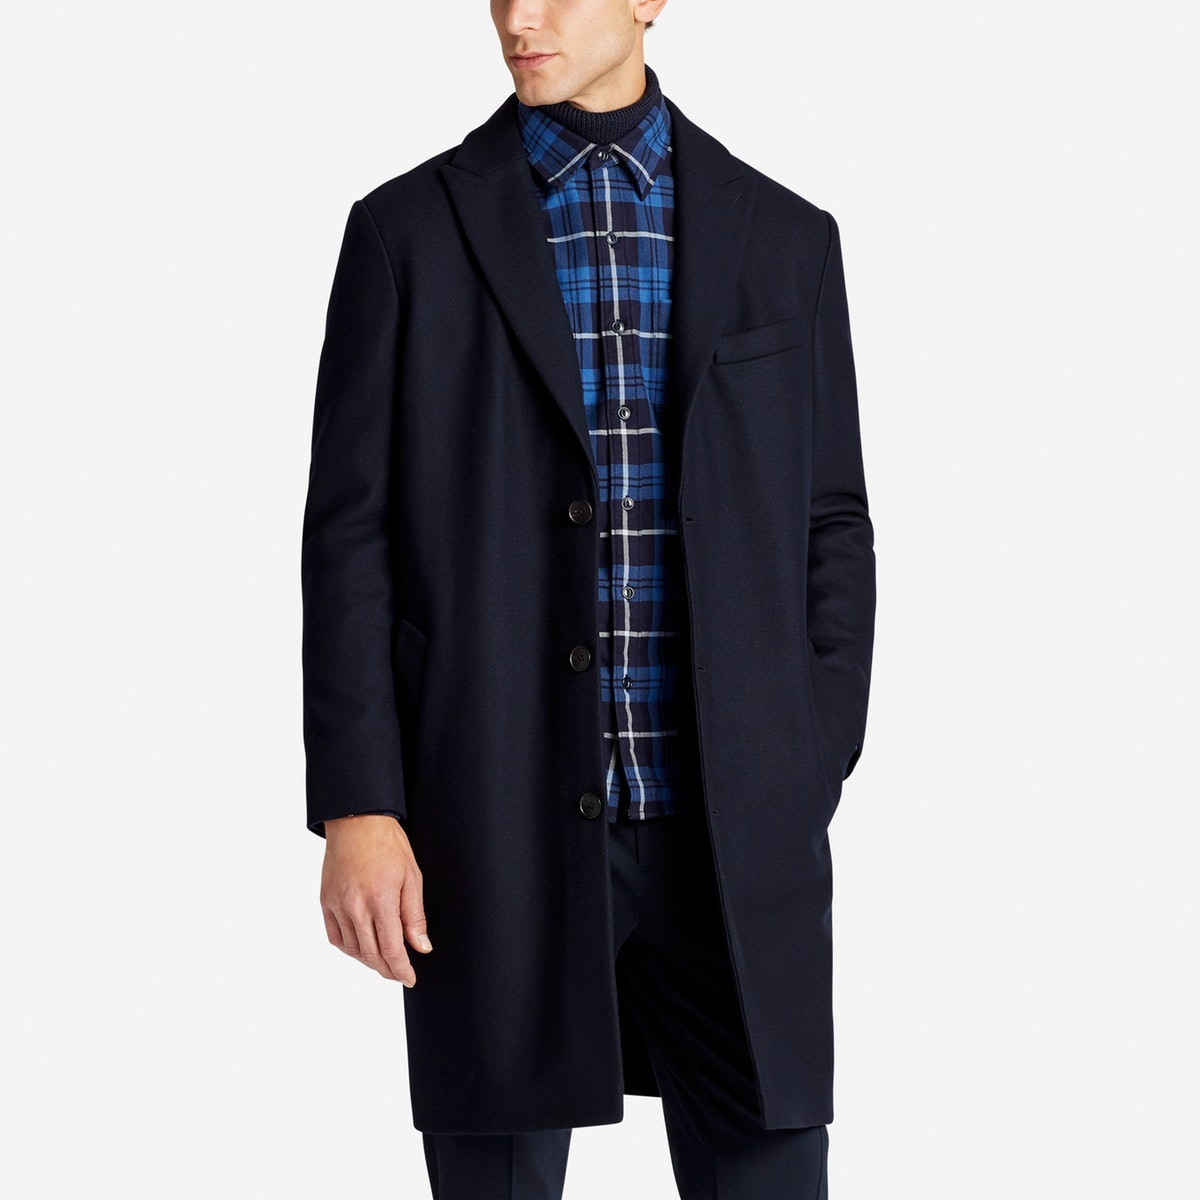 The Oversized Topcoat